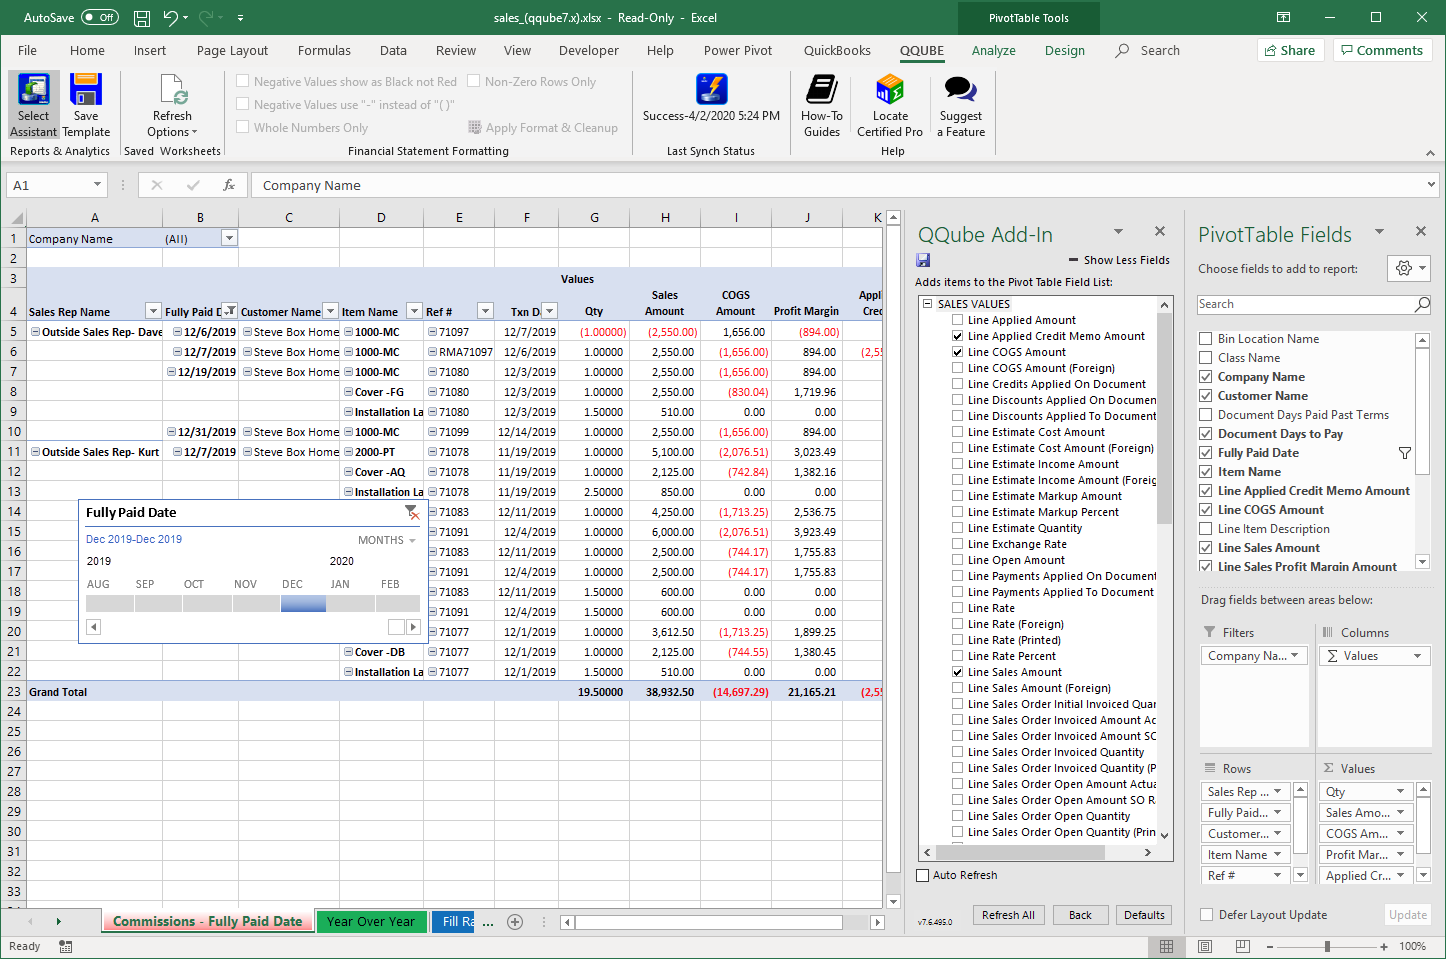 QuickBooks Sales Commission Reports using QQube with Excel